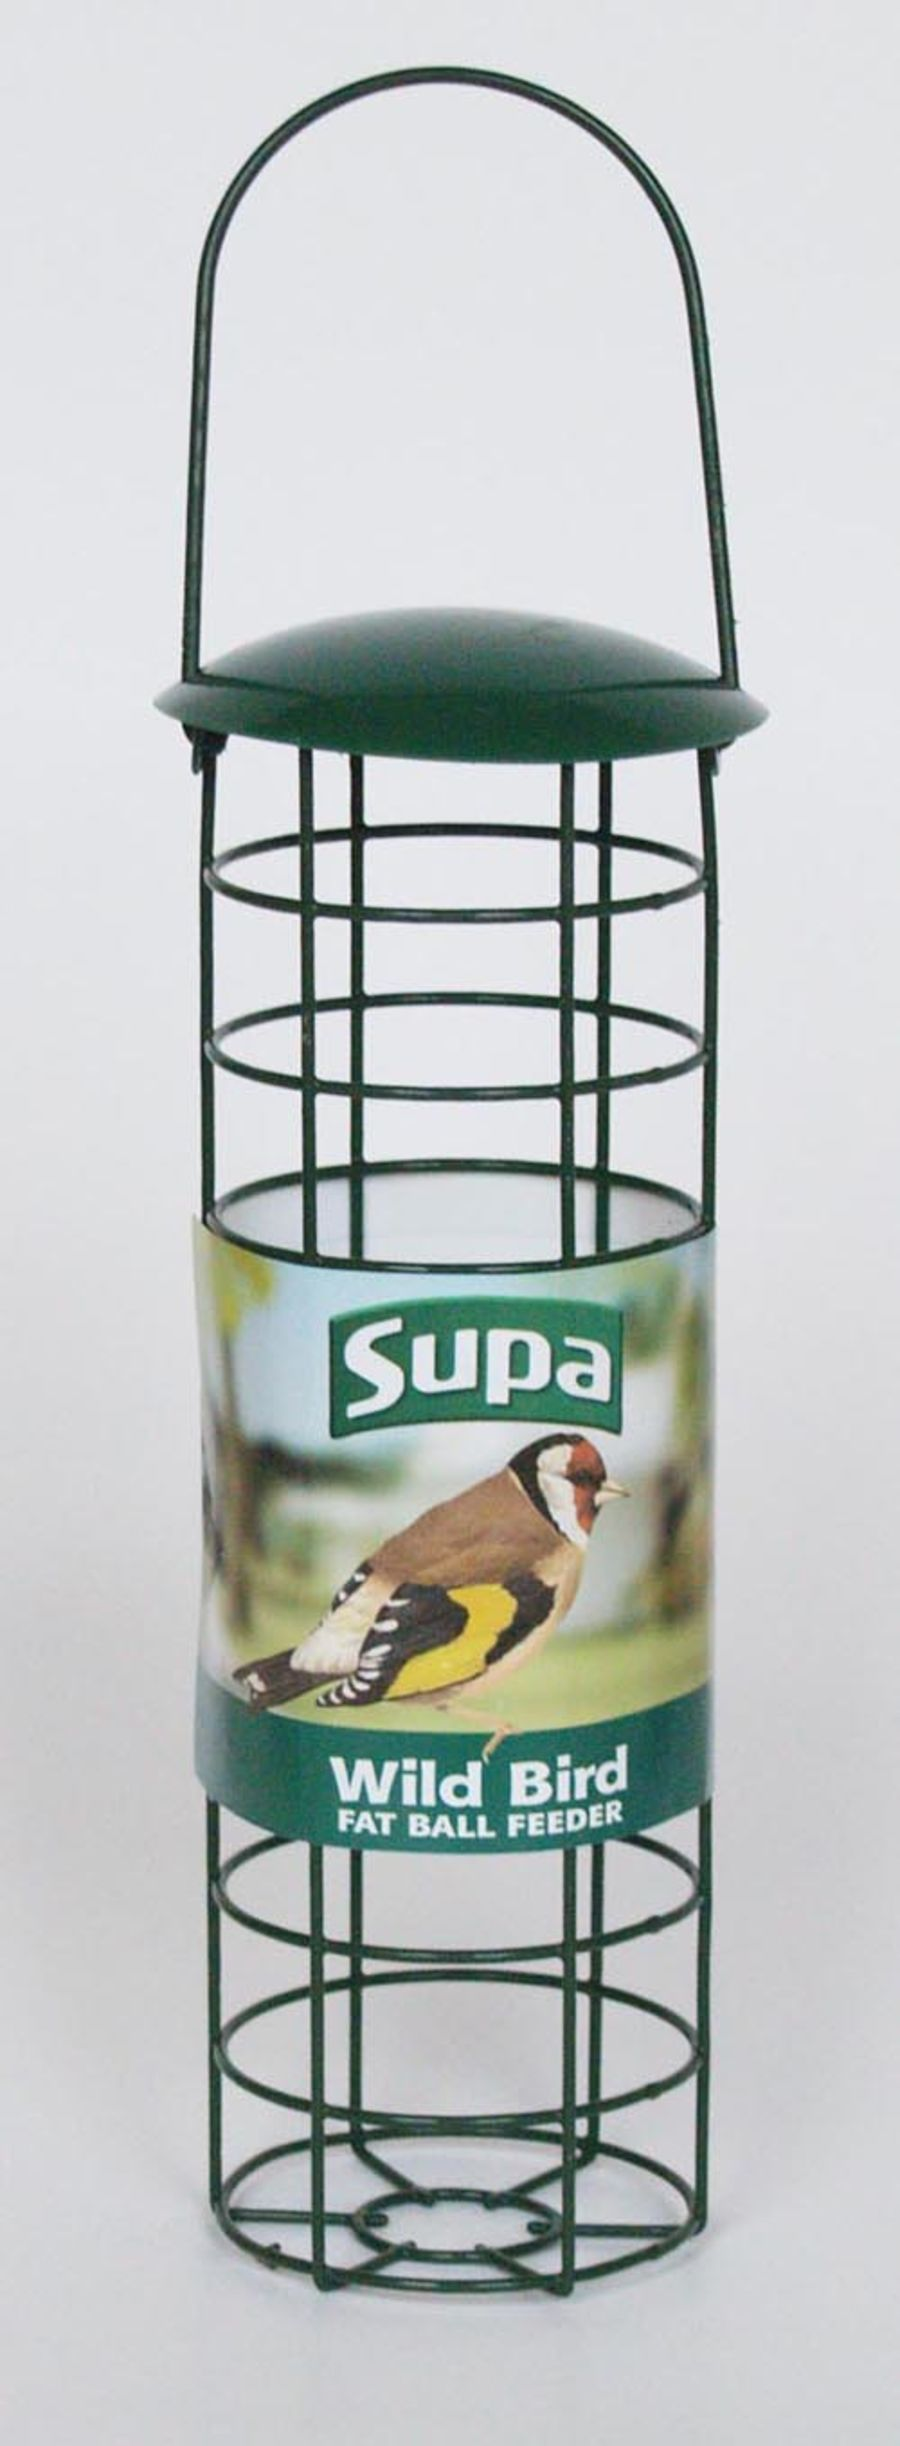 Supa fat ball feeder for small fat balls.